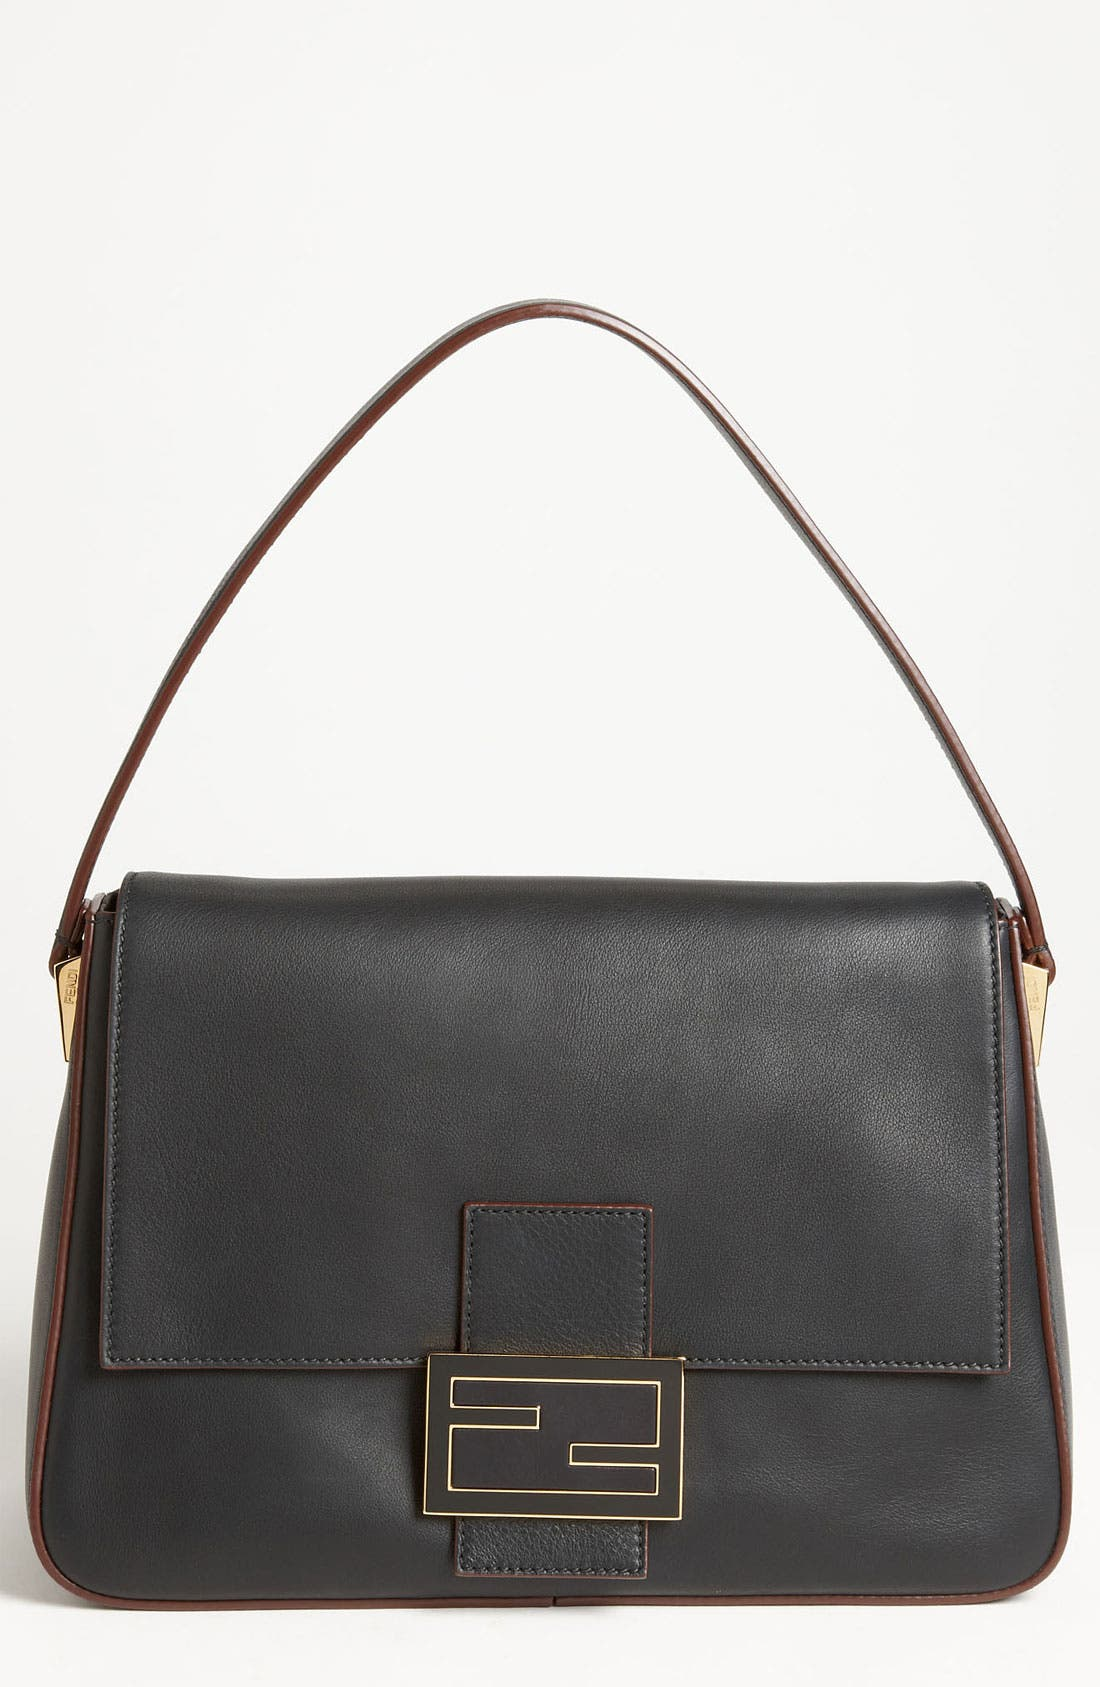 Main Image - Fendi 'Forever - Big Mamma' Shoulder Bag